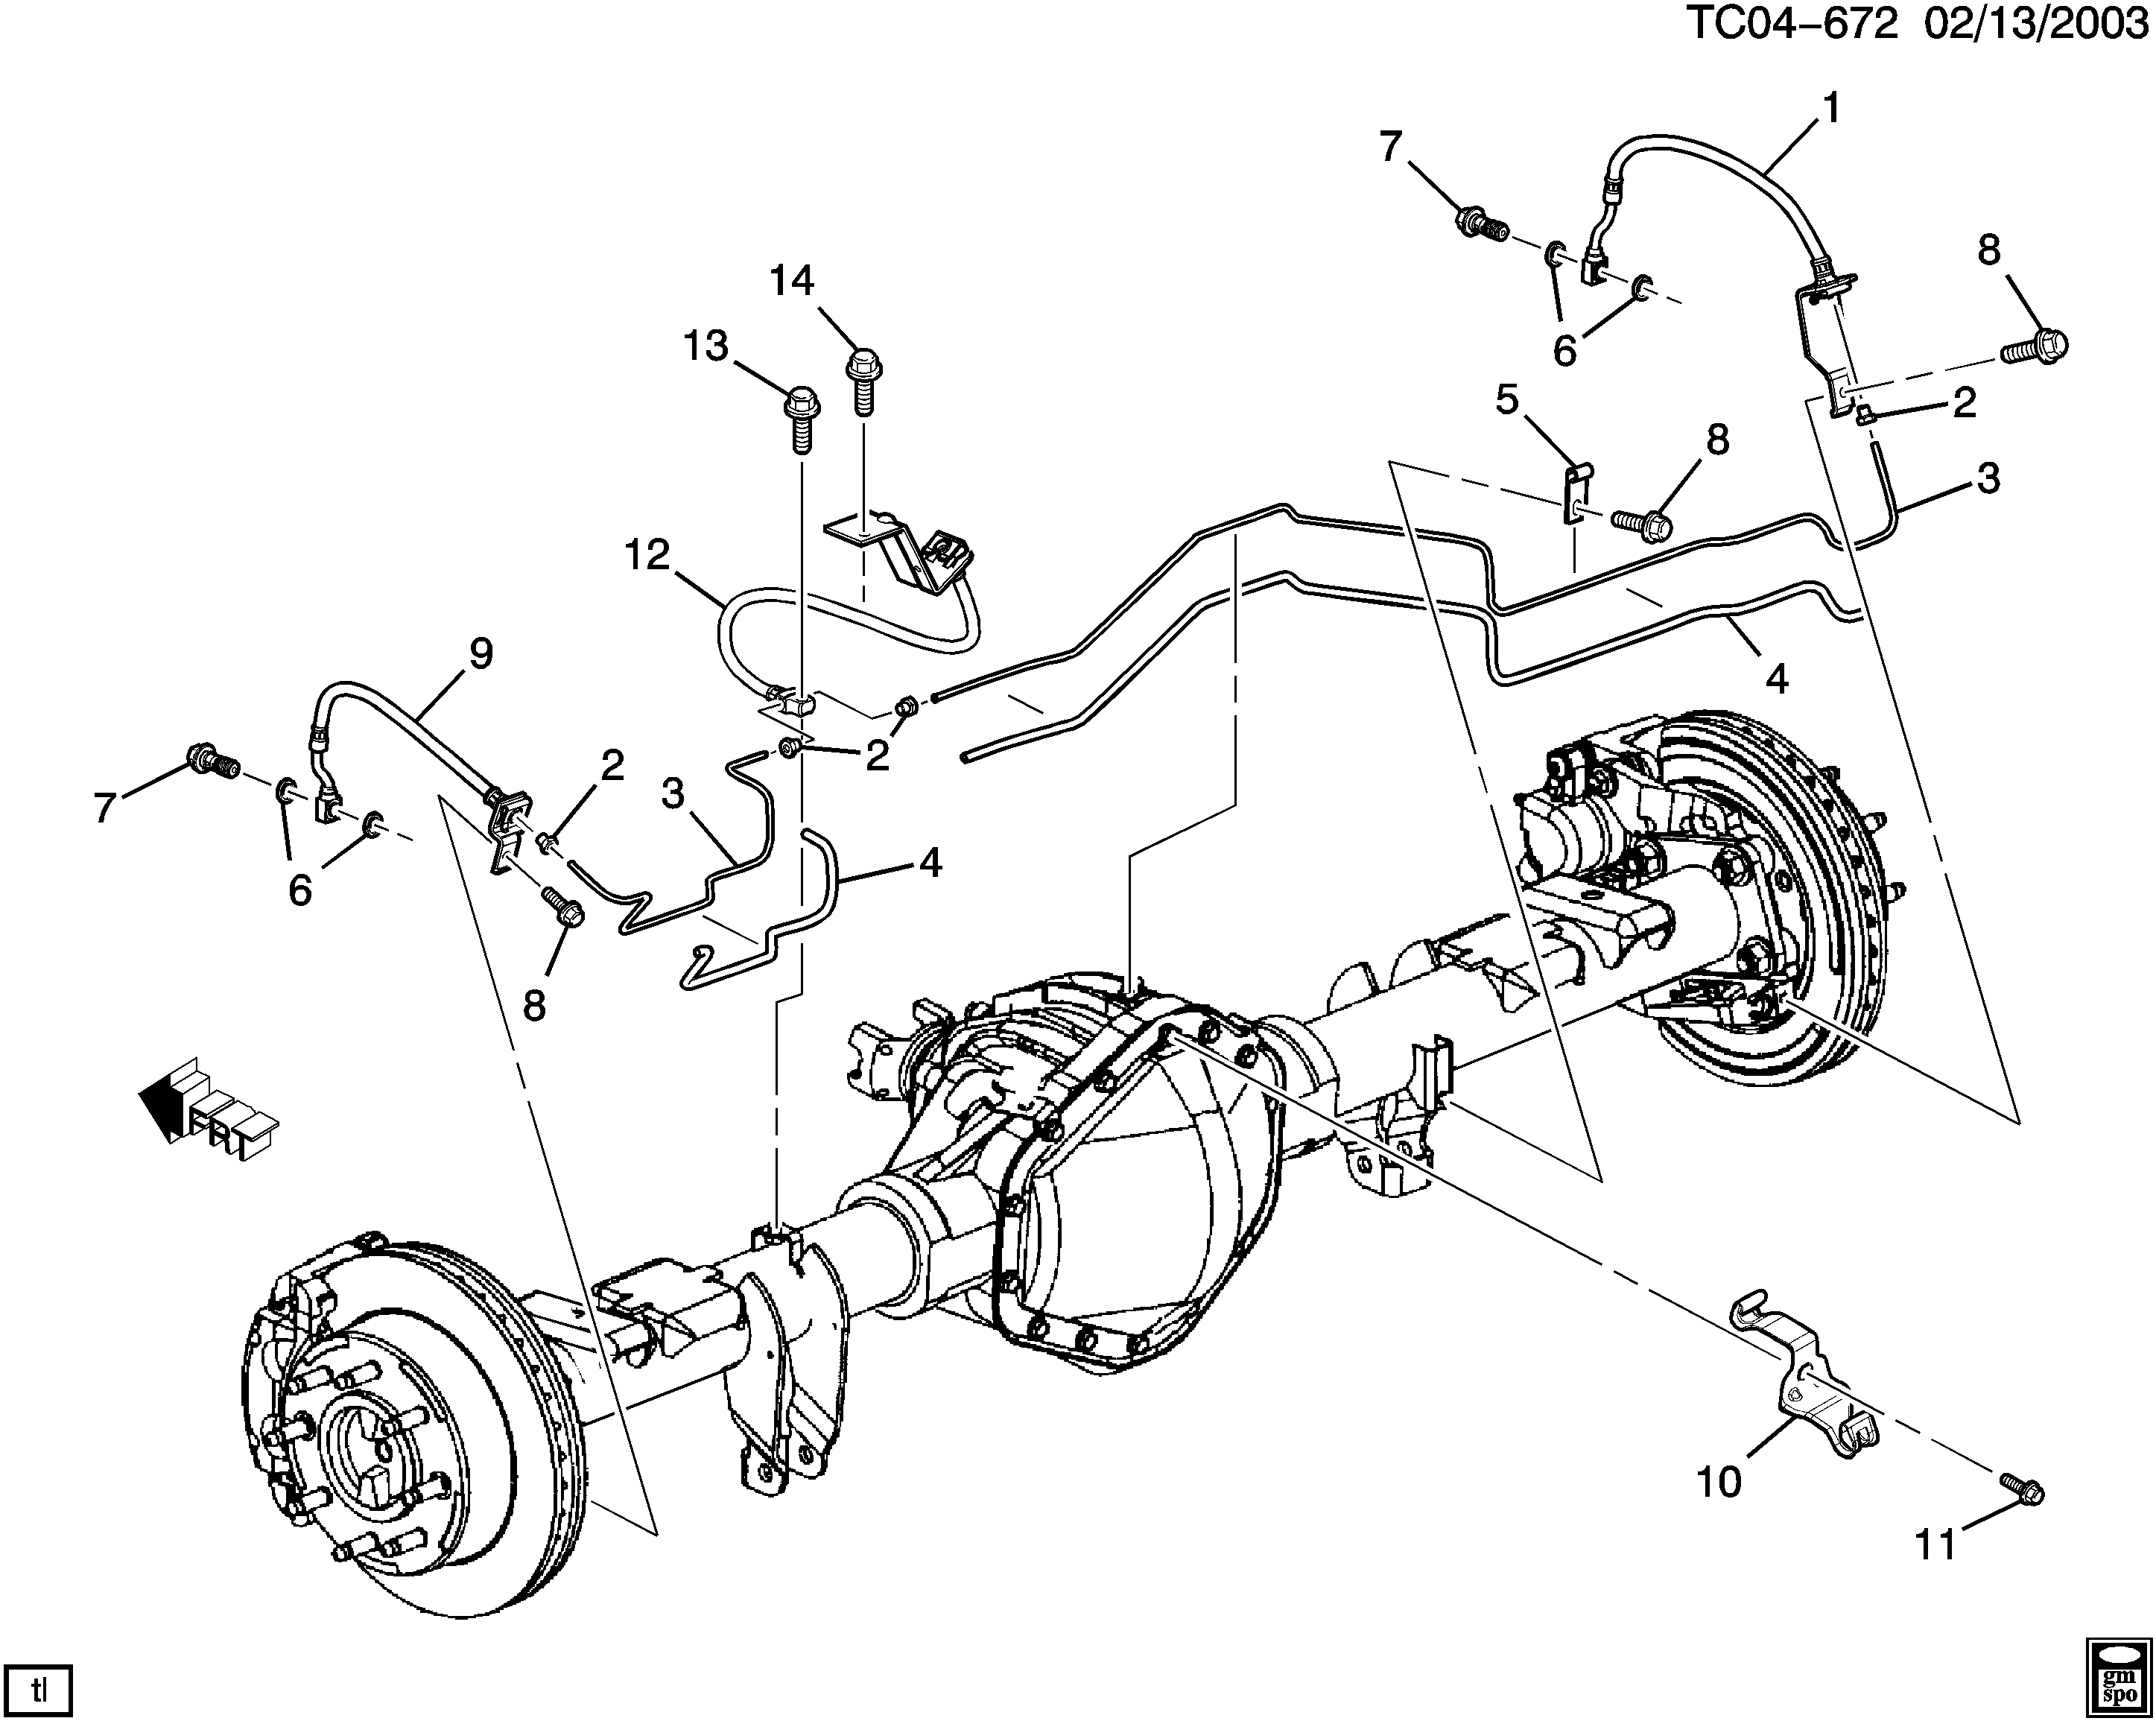 Chevy Silverado Transmission Wiring Diagram